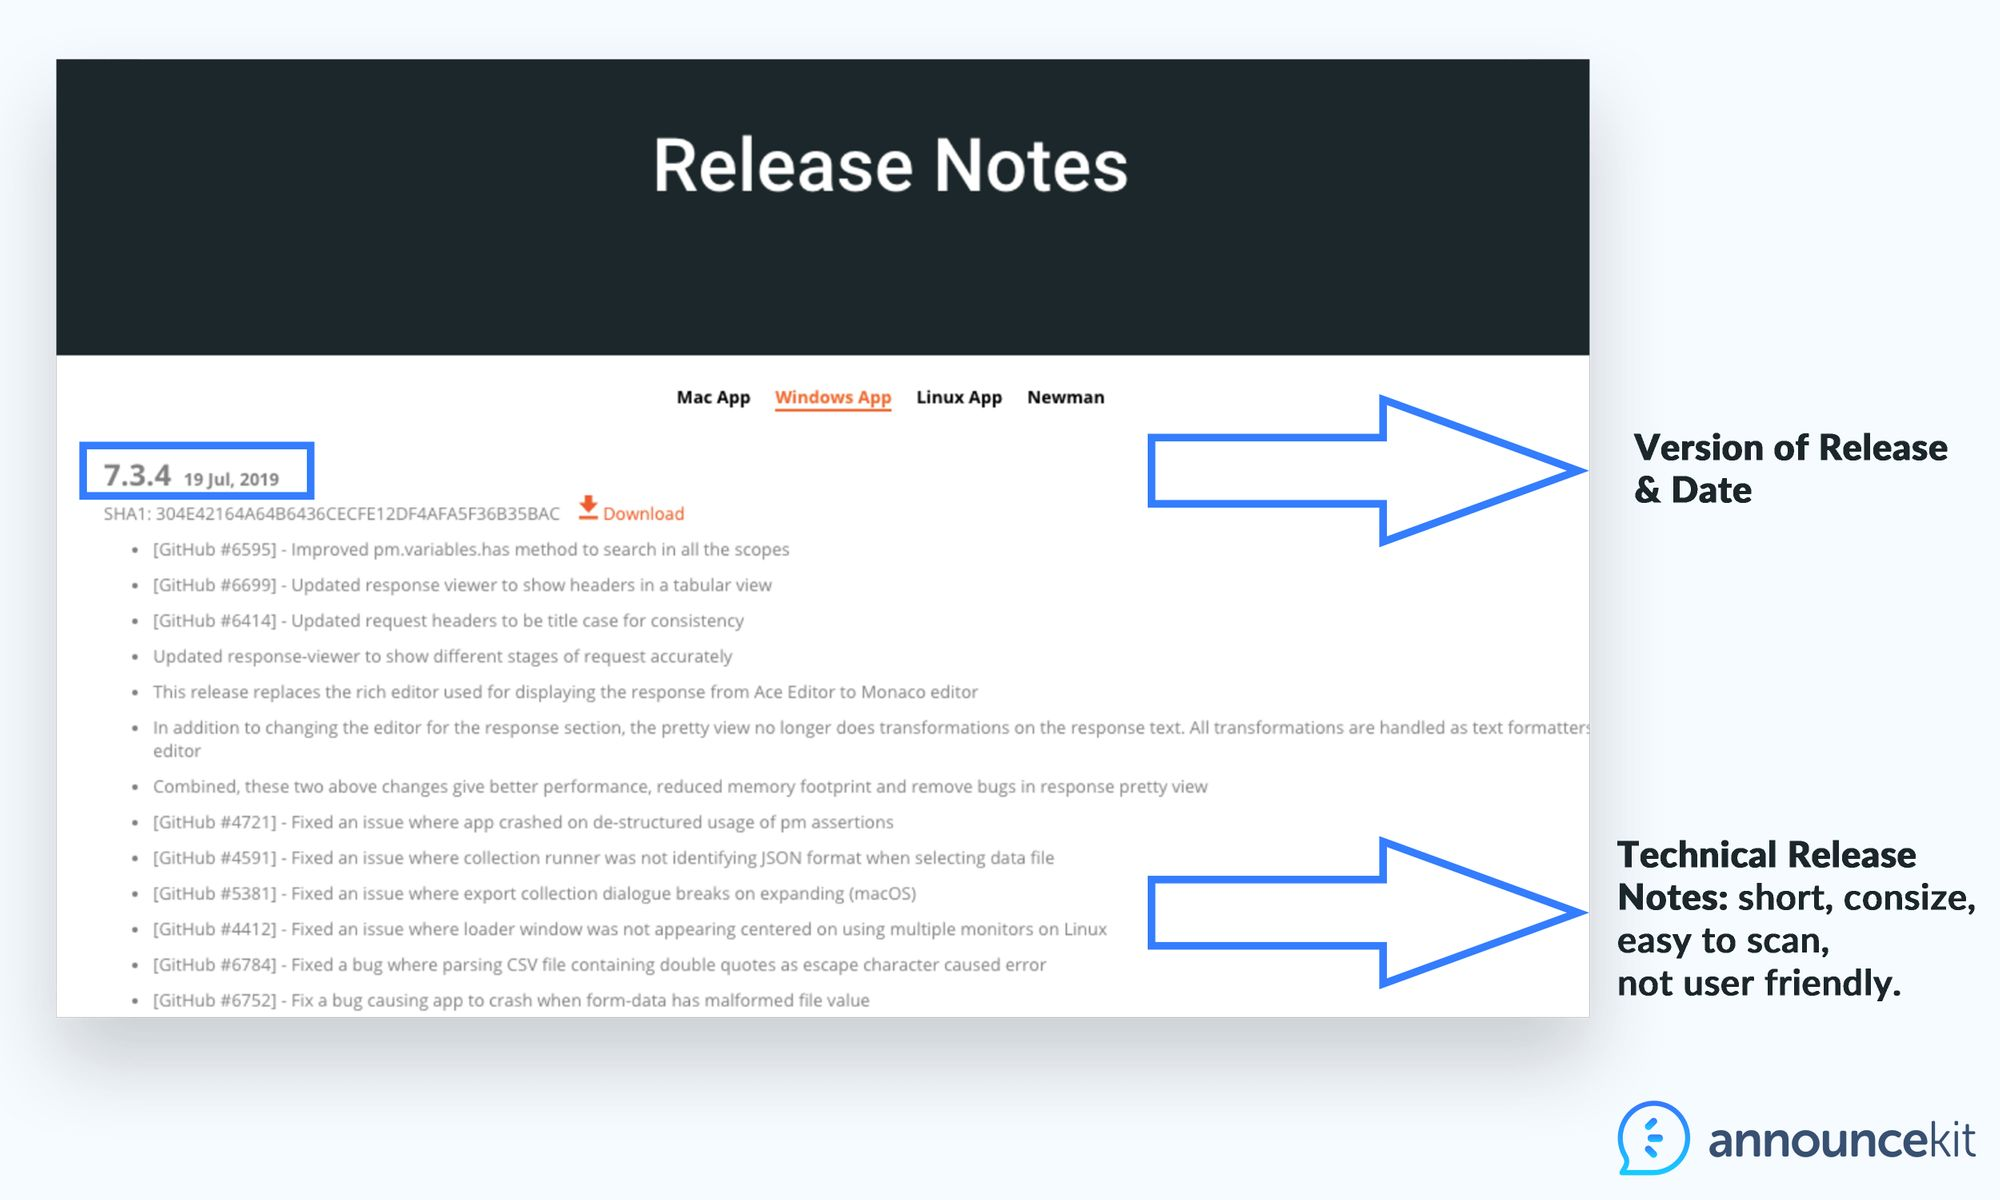 Release notes examples and app